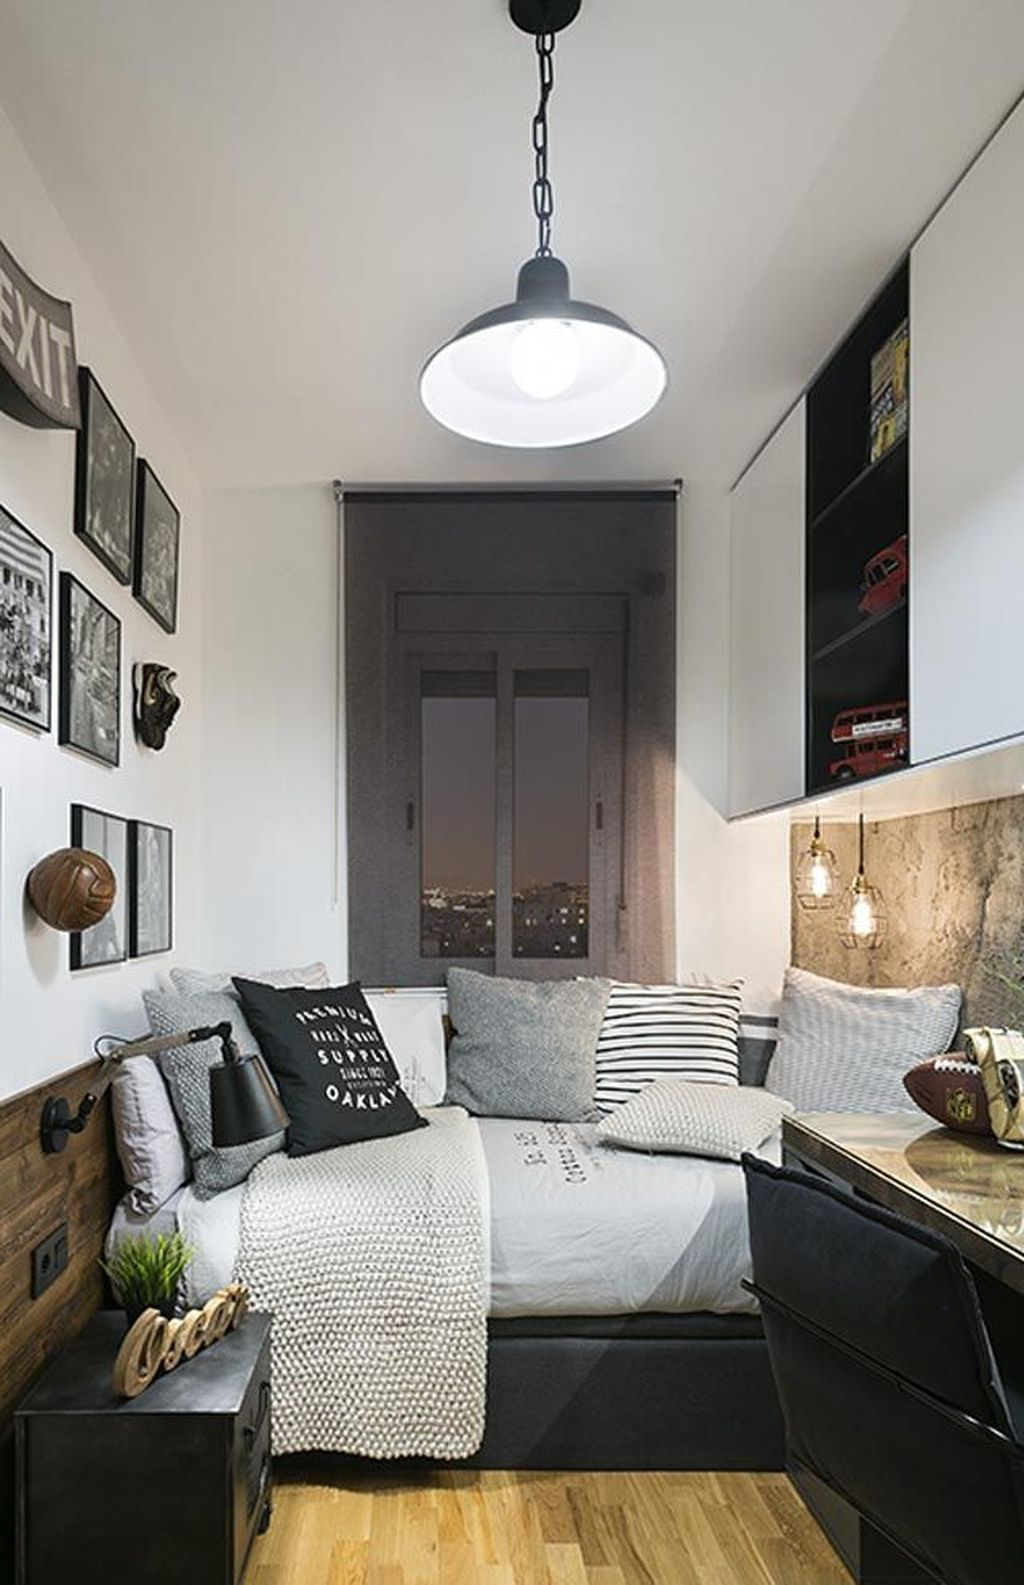 Best 35 Topmost Small Bedroom Ideas On A Budget Bedroom 400 x 300